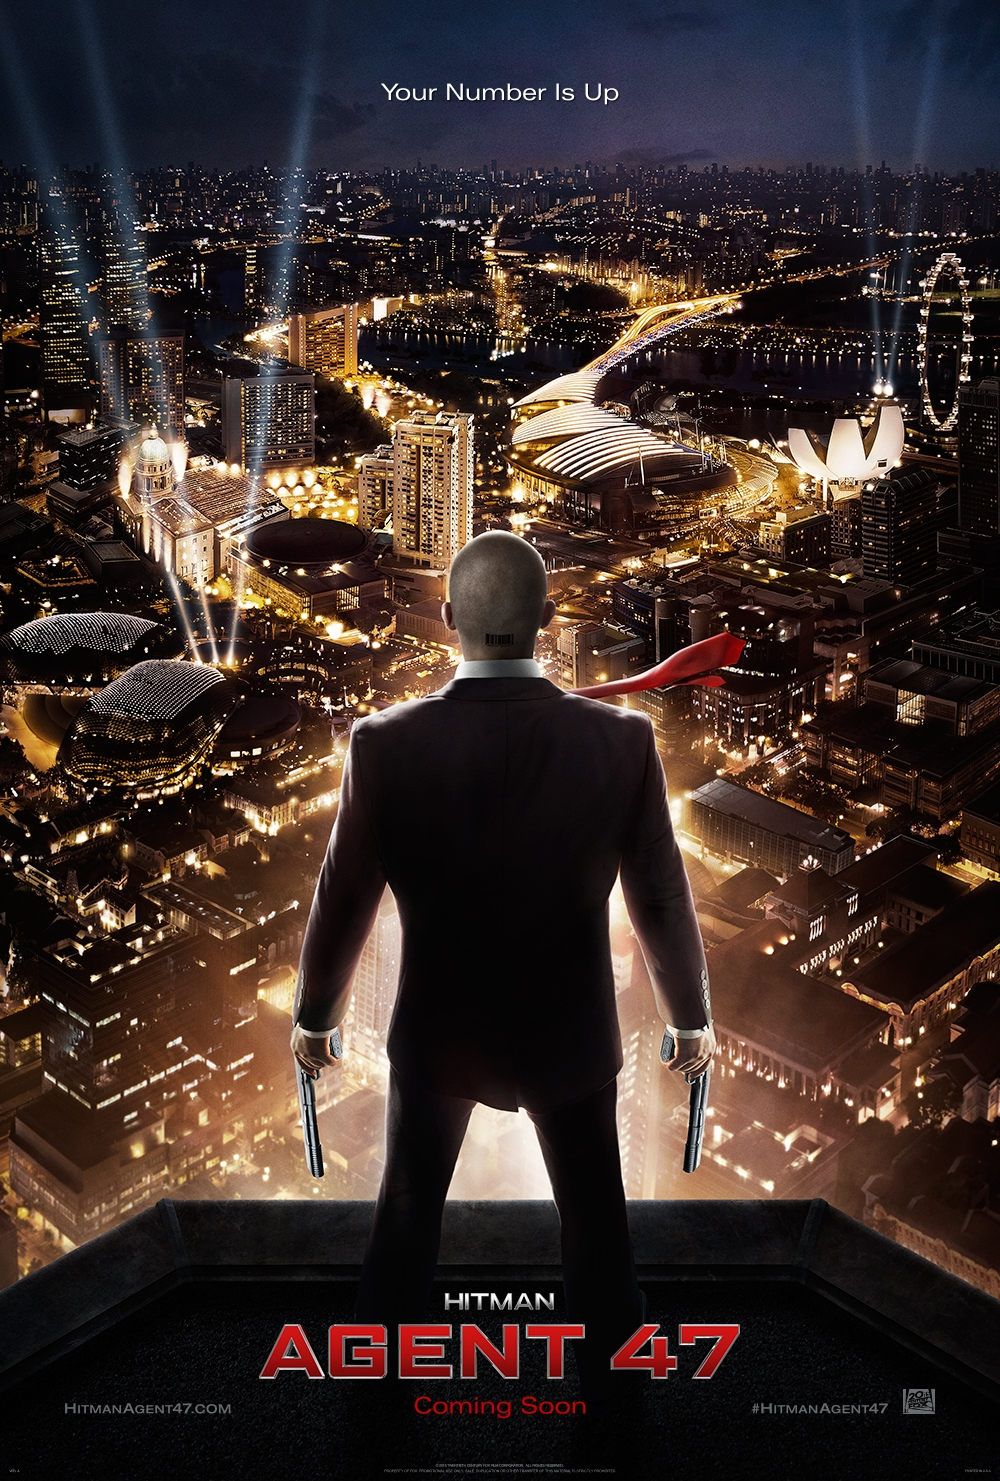 Hitman Agent 47 Really Good And Had A Lot Of Action Autism